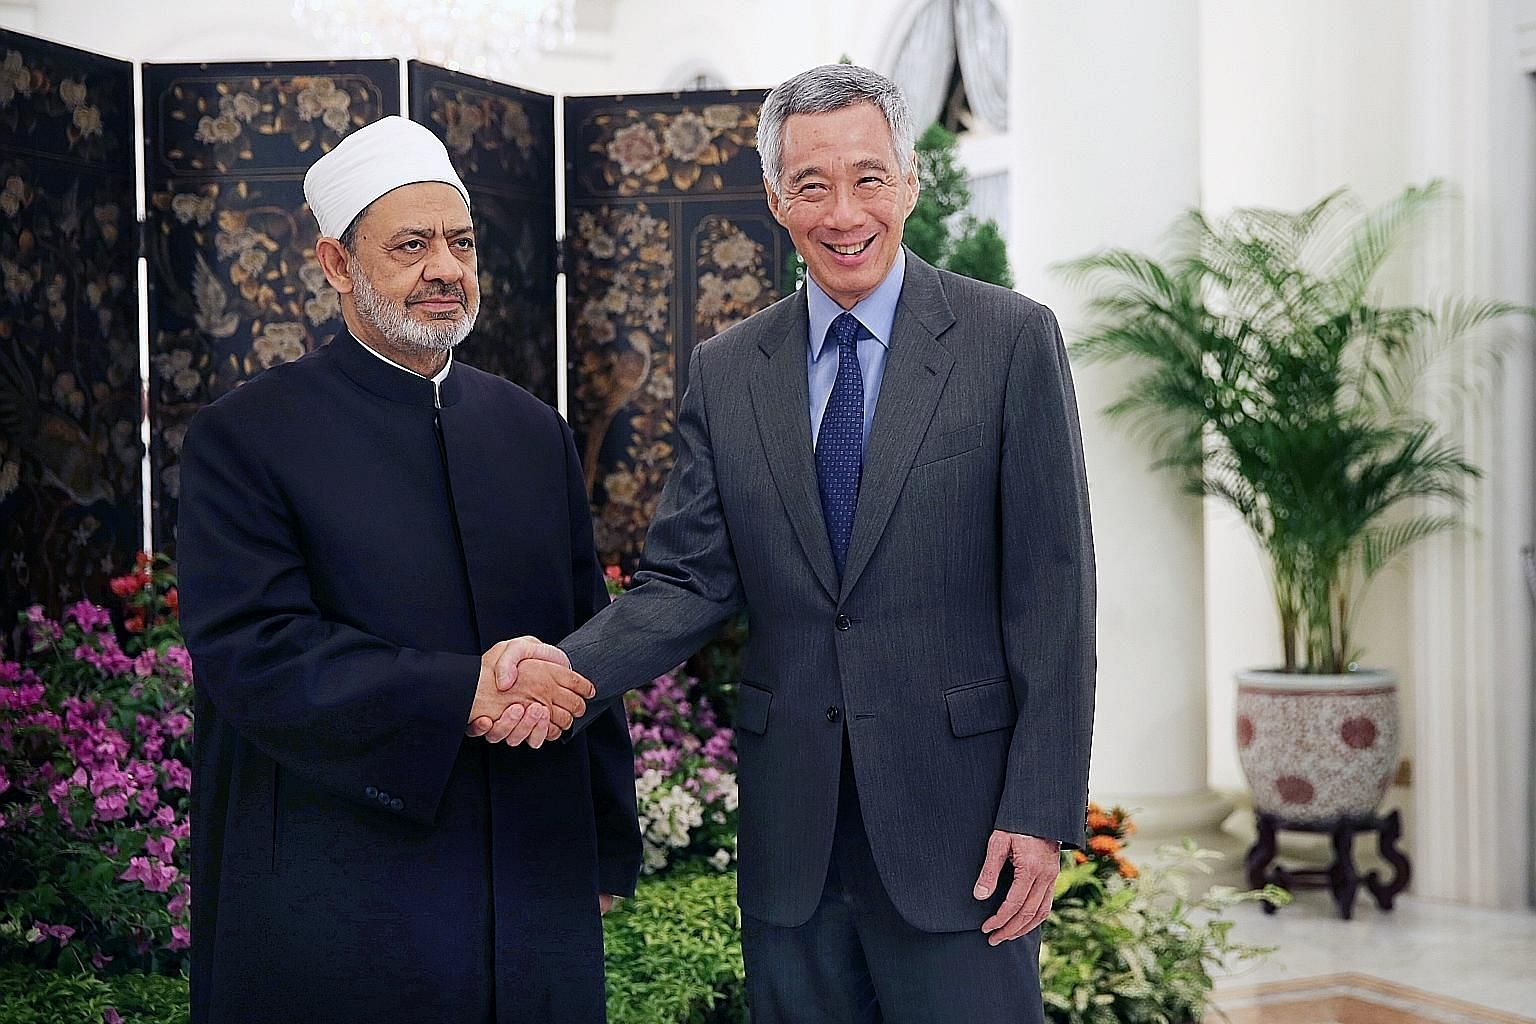 Prime Minister Lee Hsien Loong yesterday welcomed the Grand Imam of Egypt's renowned Al-Azhar University, Dr Ahmed Al Tayyeb, to Singapore and hosted him to dinner at the Istana. Dr Al Tayyeb, who is known for his work in forging greater understandin